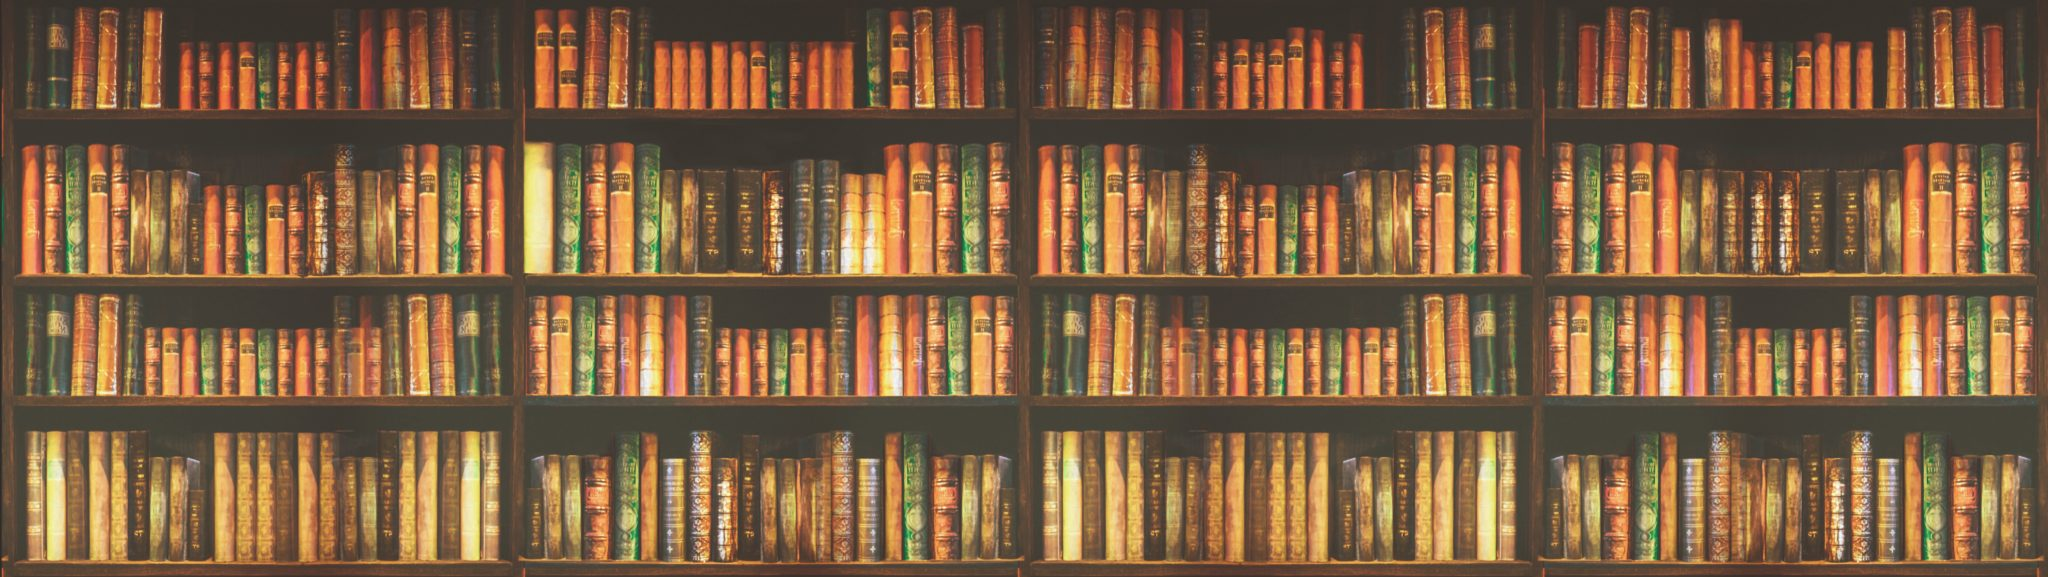 Image of a library bookshelf; courtesy of Shutterstock.